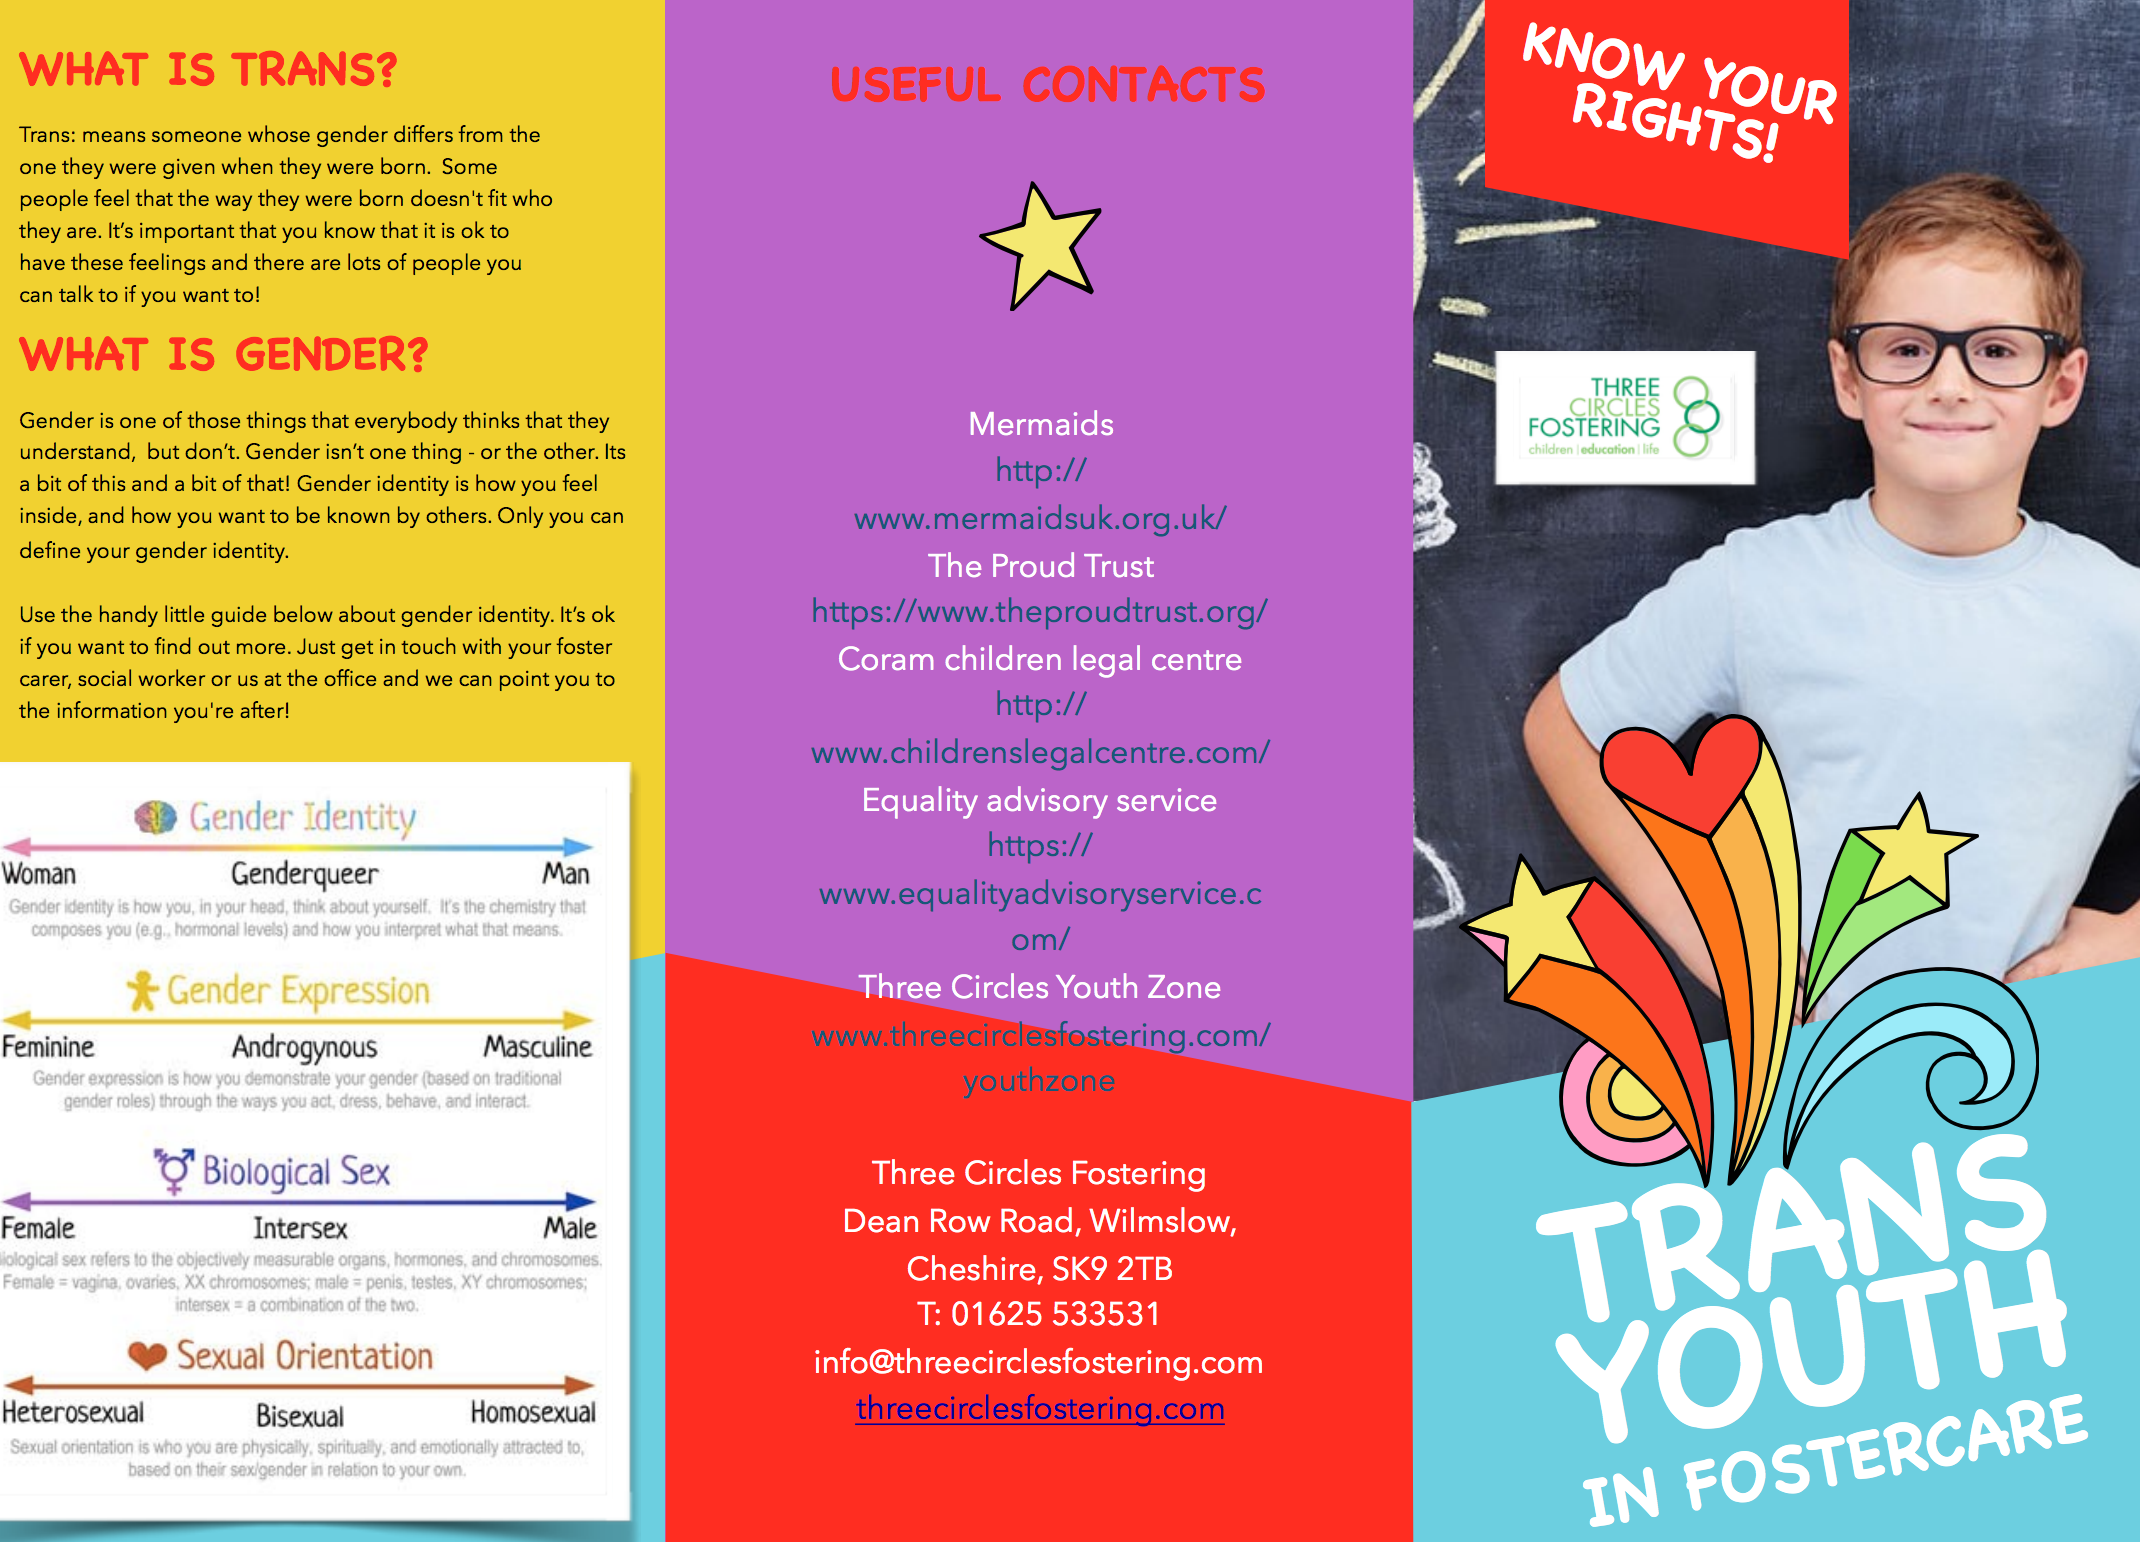 Trans Youth in Care  - Know Your Rights - a leaflet for young people